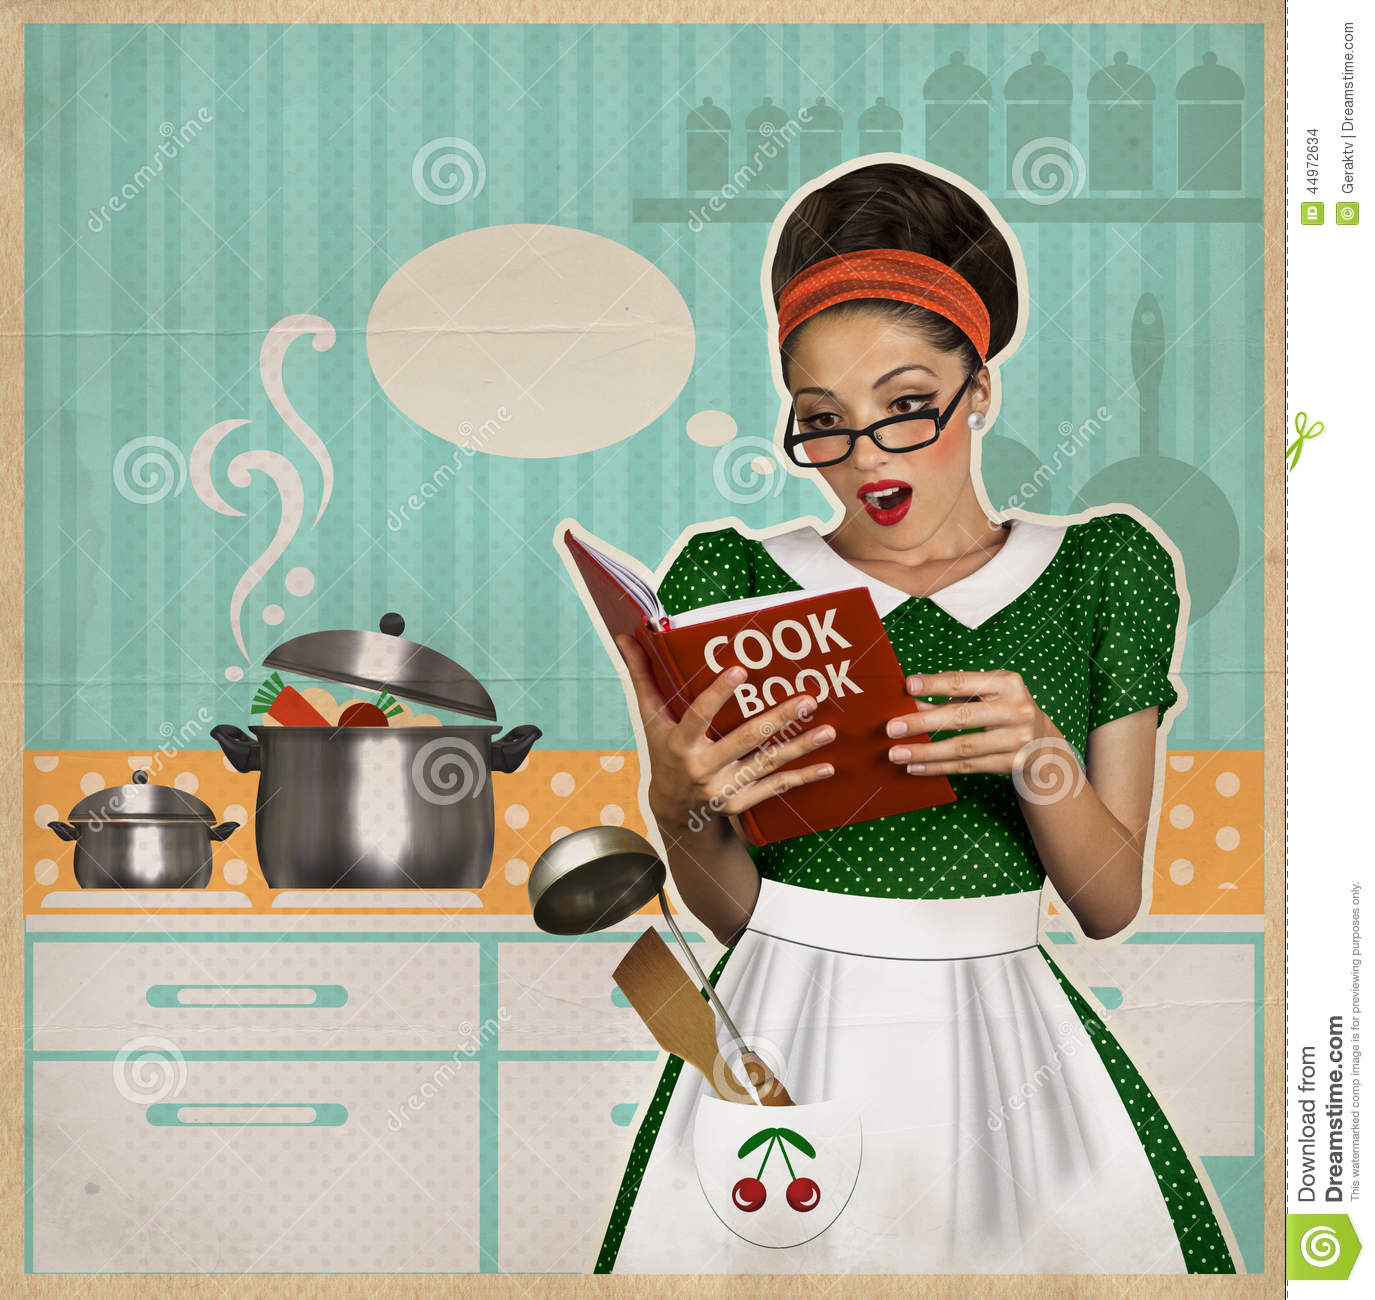 1950 s 1960 s from housewive A collection of unpublished recipes from the 1950s compiled by military   1950 mandlový dort s kávovým krémem (almond cake with mocha.